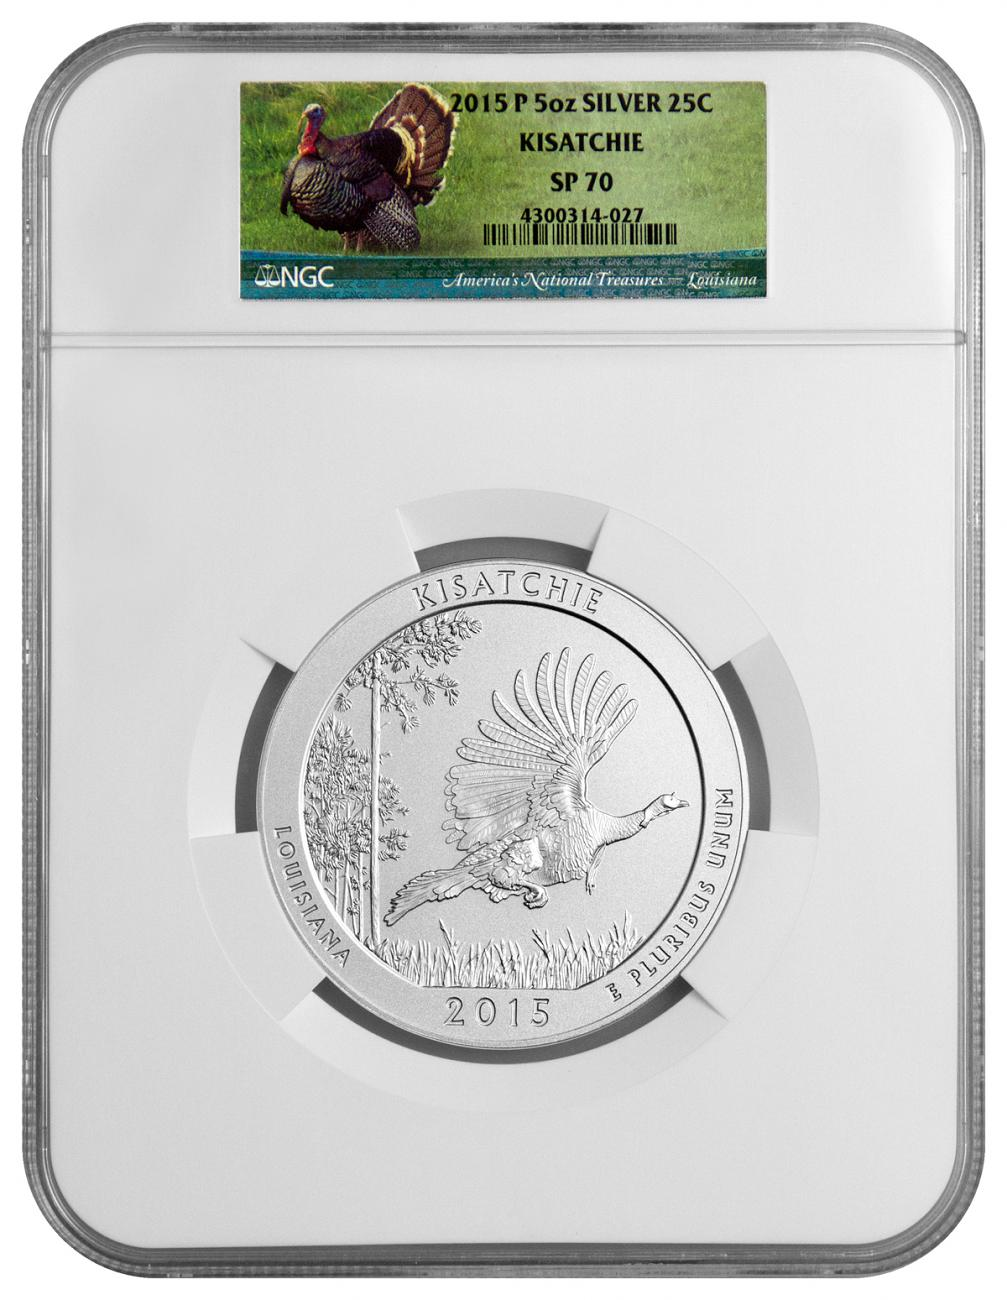 2015-P Kisatchie 5 oz. Silver America the Beautiful Specimen Coin NGC SP70